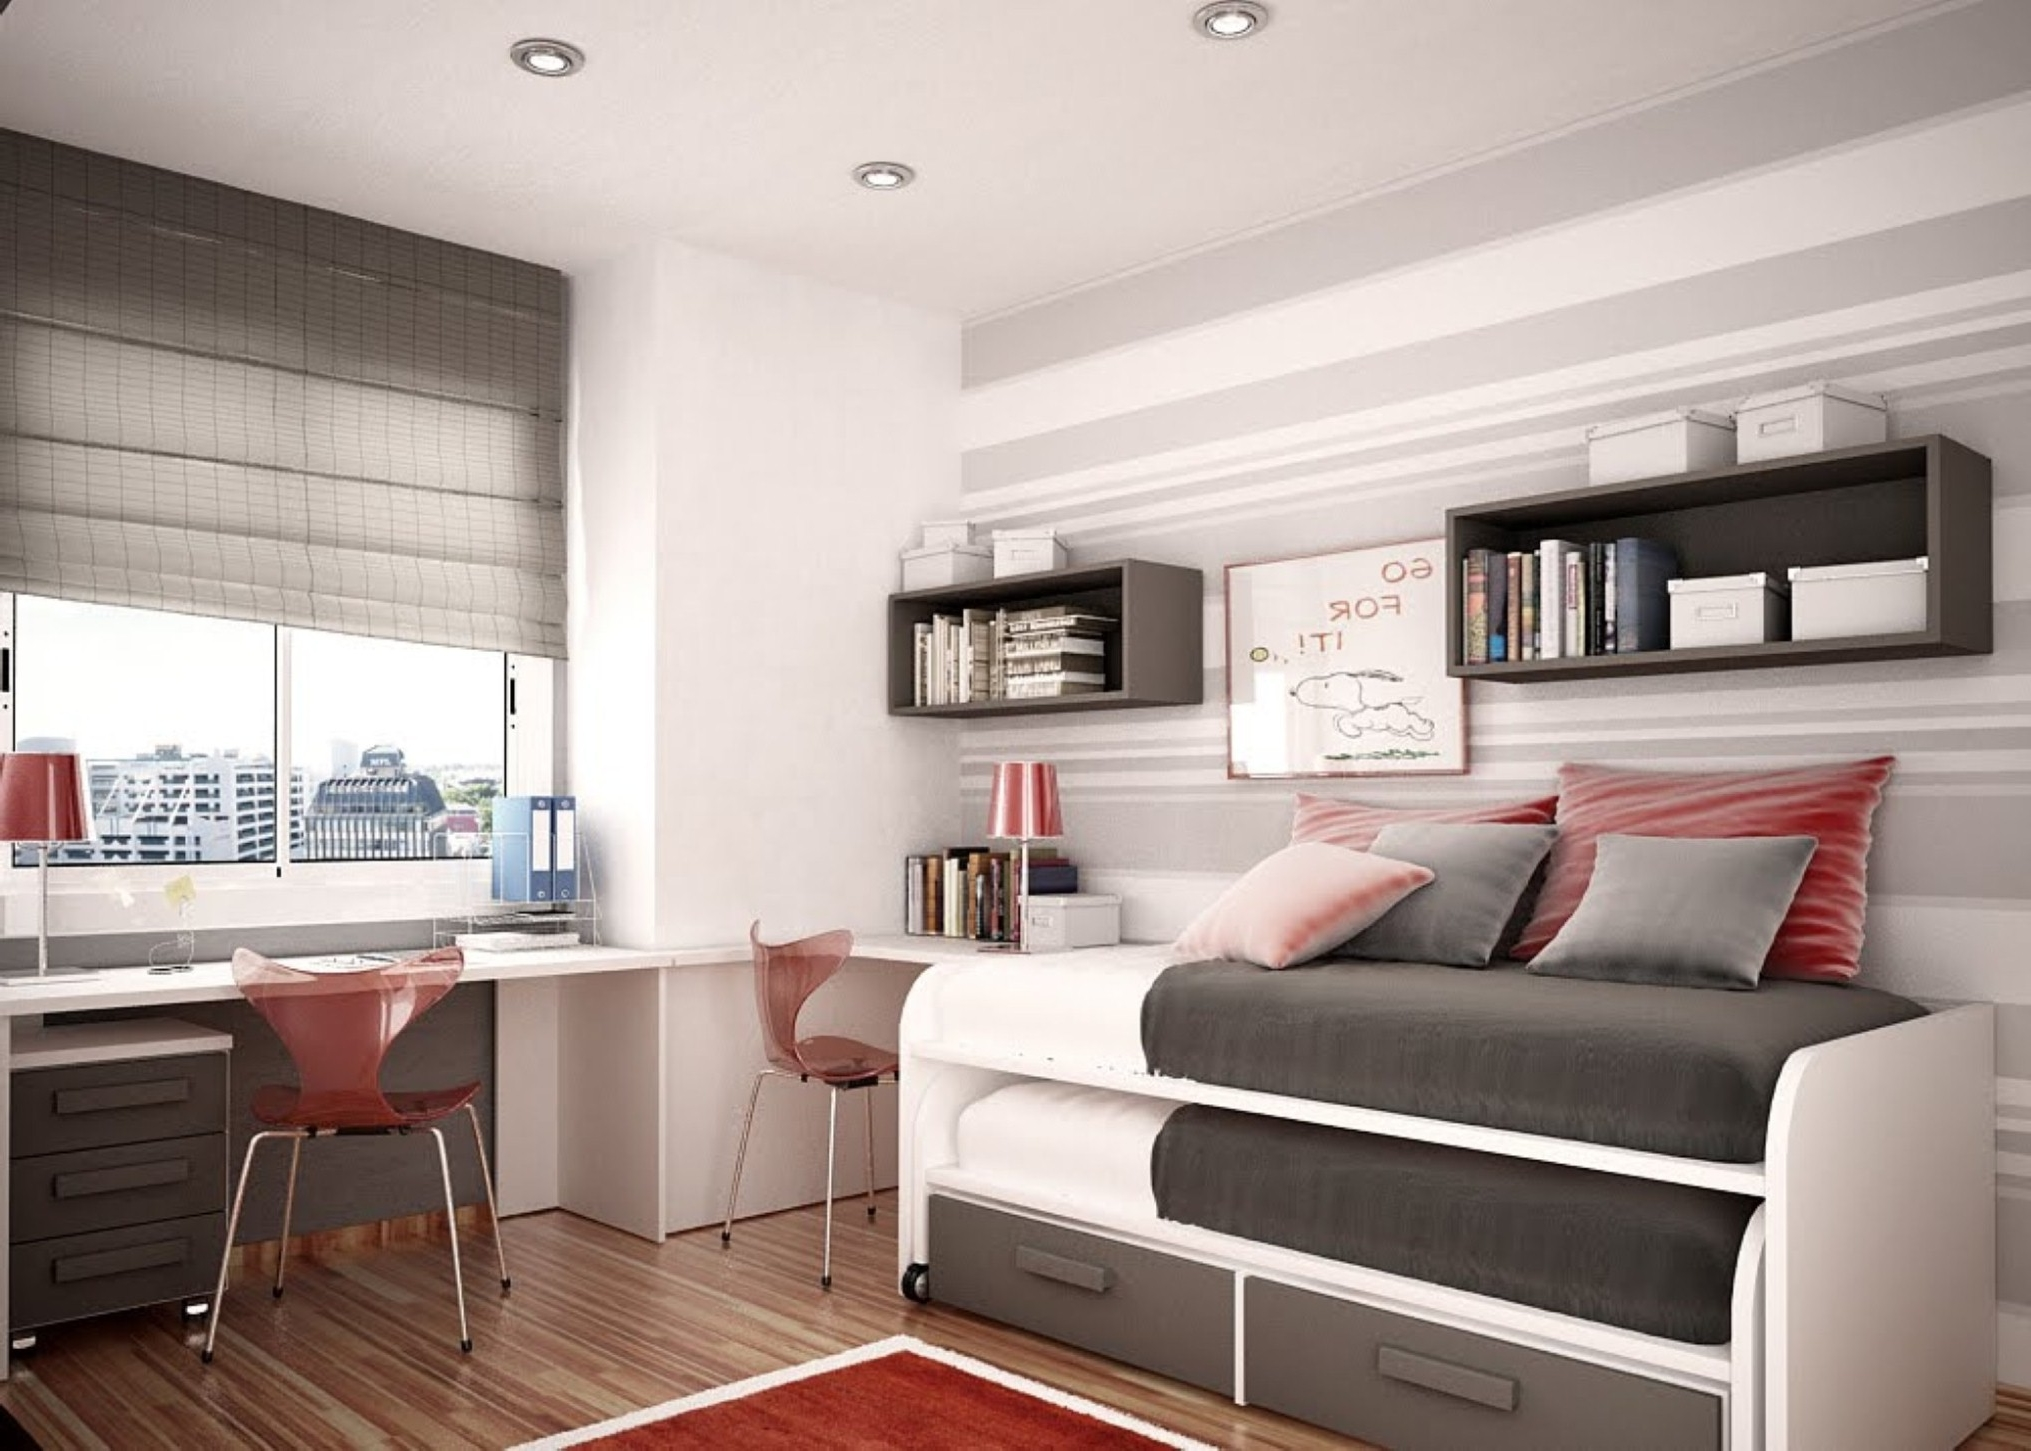 neat-inspirational-space-saving-pull-bunk-bed-design-feat-red-clear-desk-chair-and-chic-gray-bedroom-wall-paint